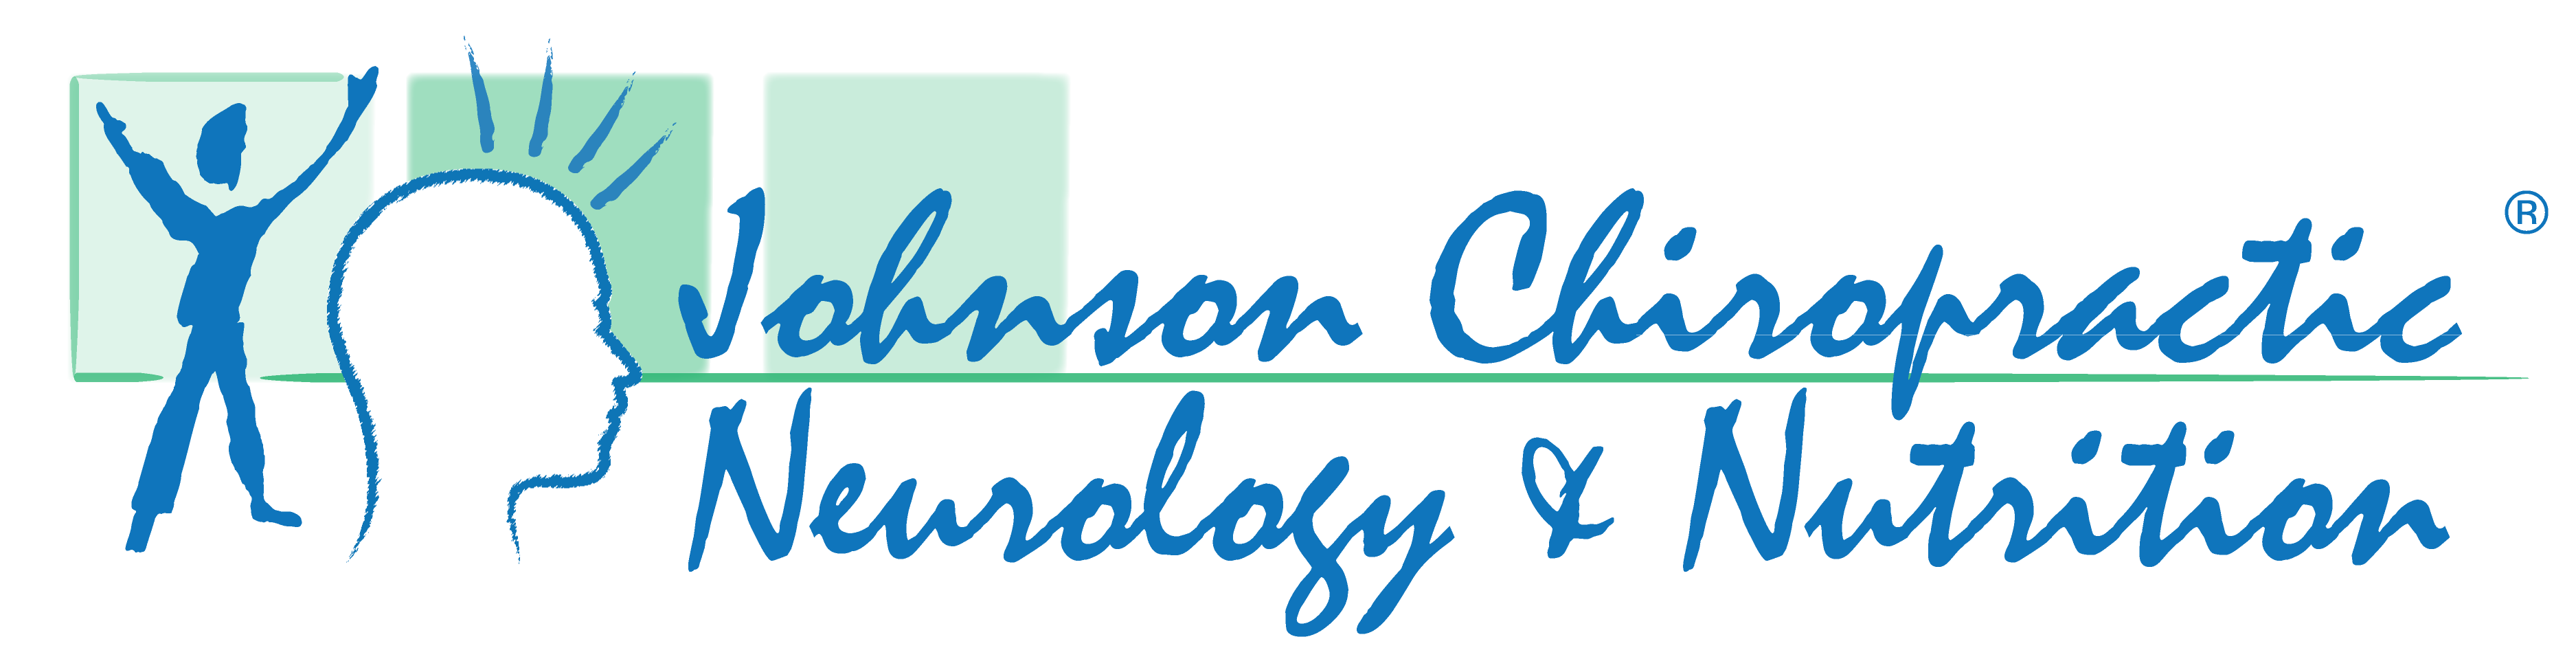 Johnson Chiropractic Neurology